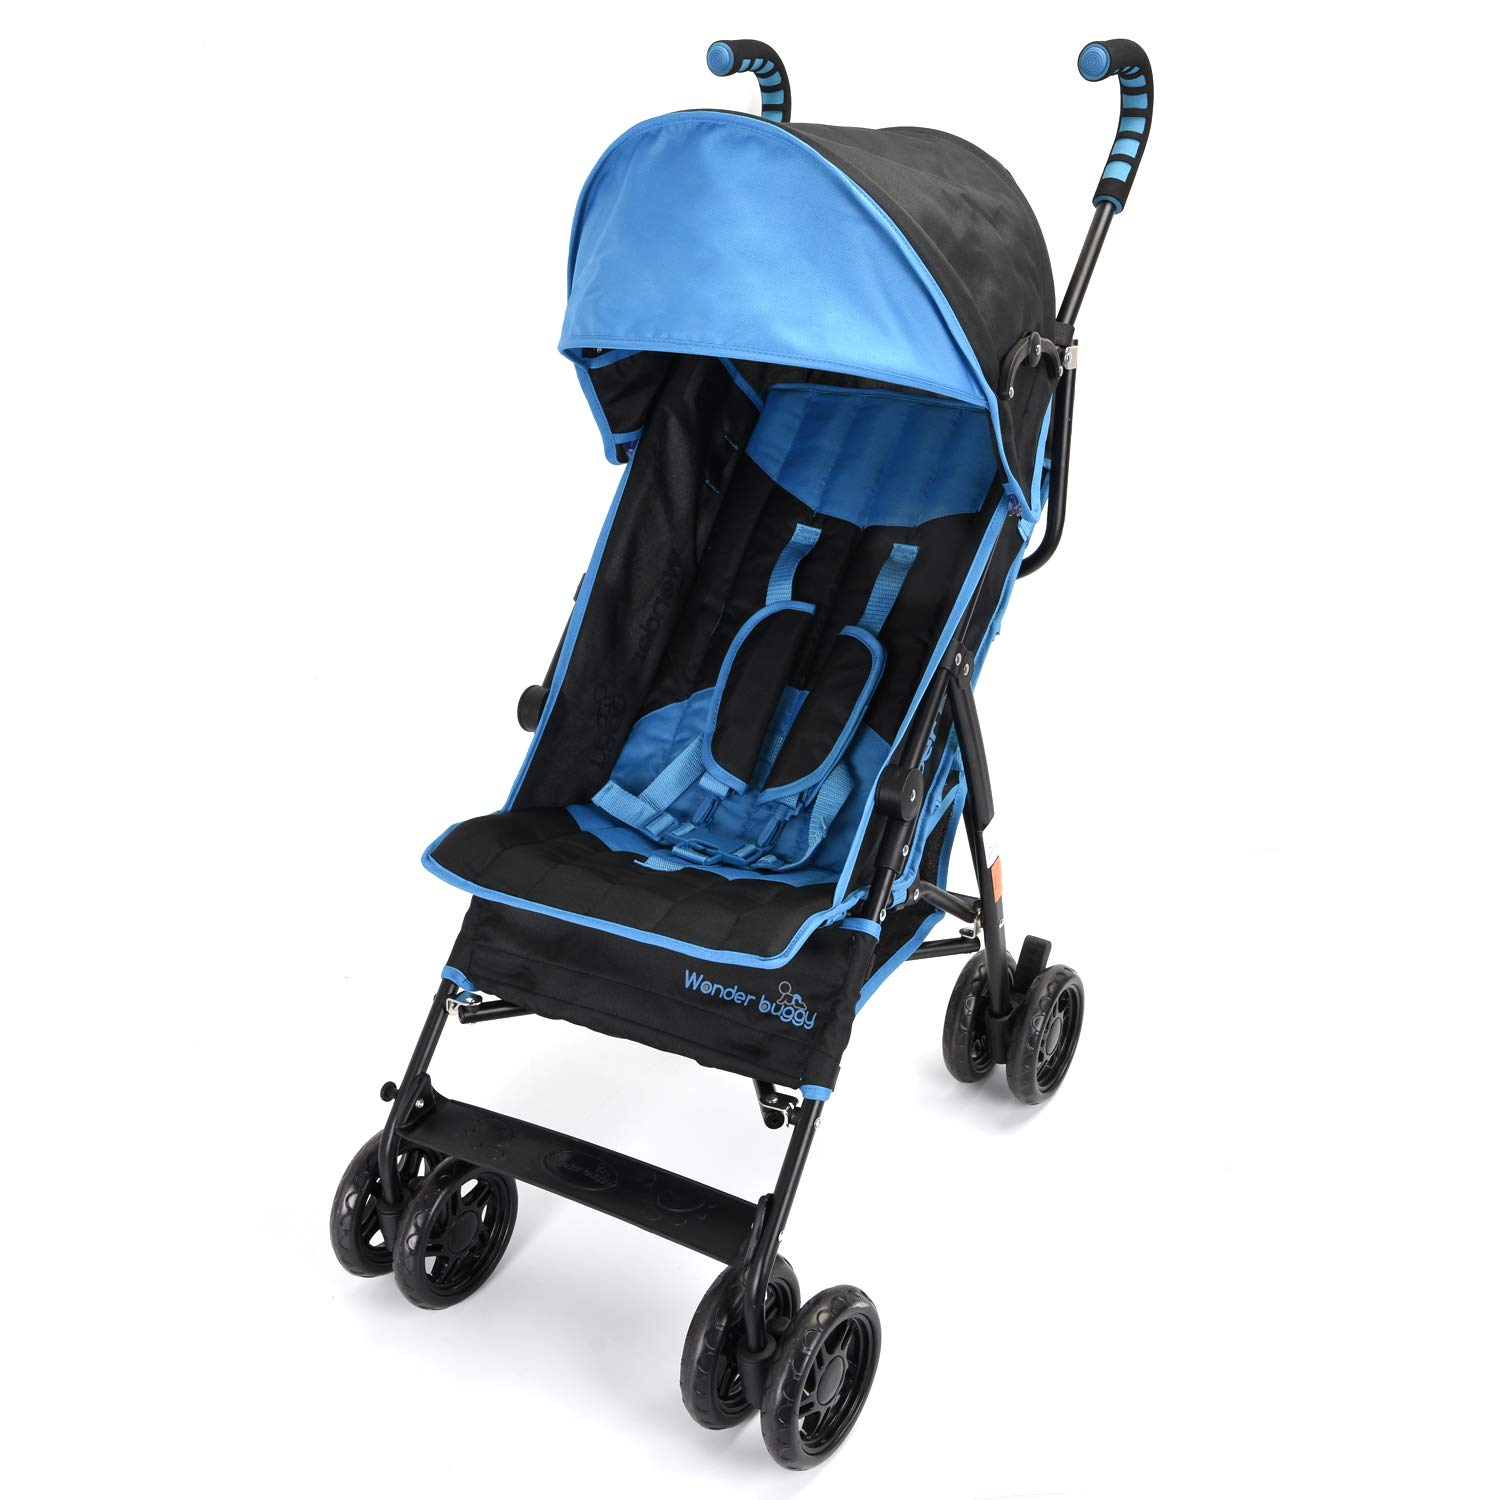 Wonder buggy Umbrella Strollers Lightweight, Baby Stroller with Large Canopy Rounded Hood and Basket, Mulit Position Foldable Infant Baby Travel Stroller Lightweight Teal Blue